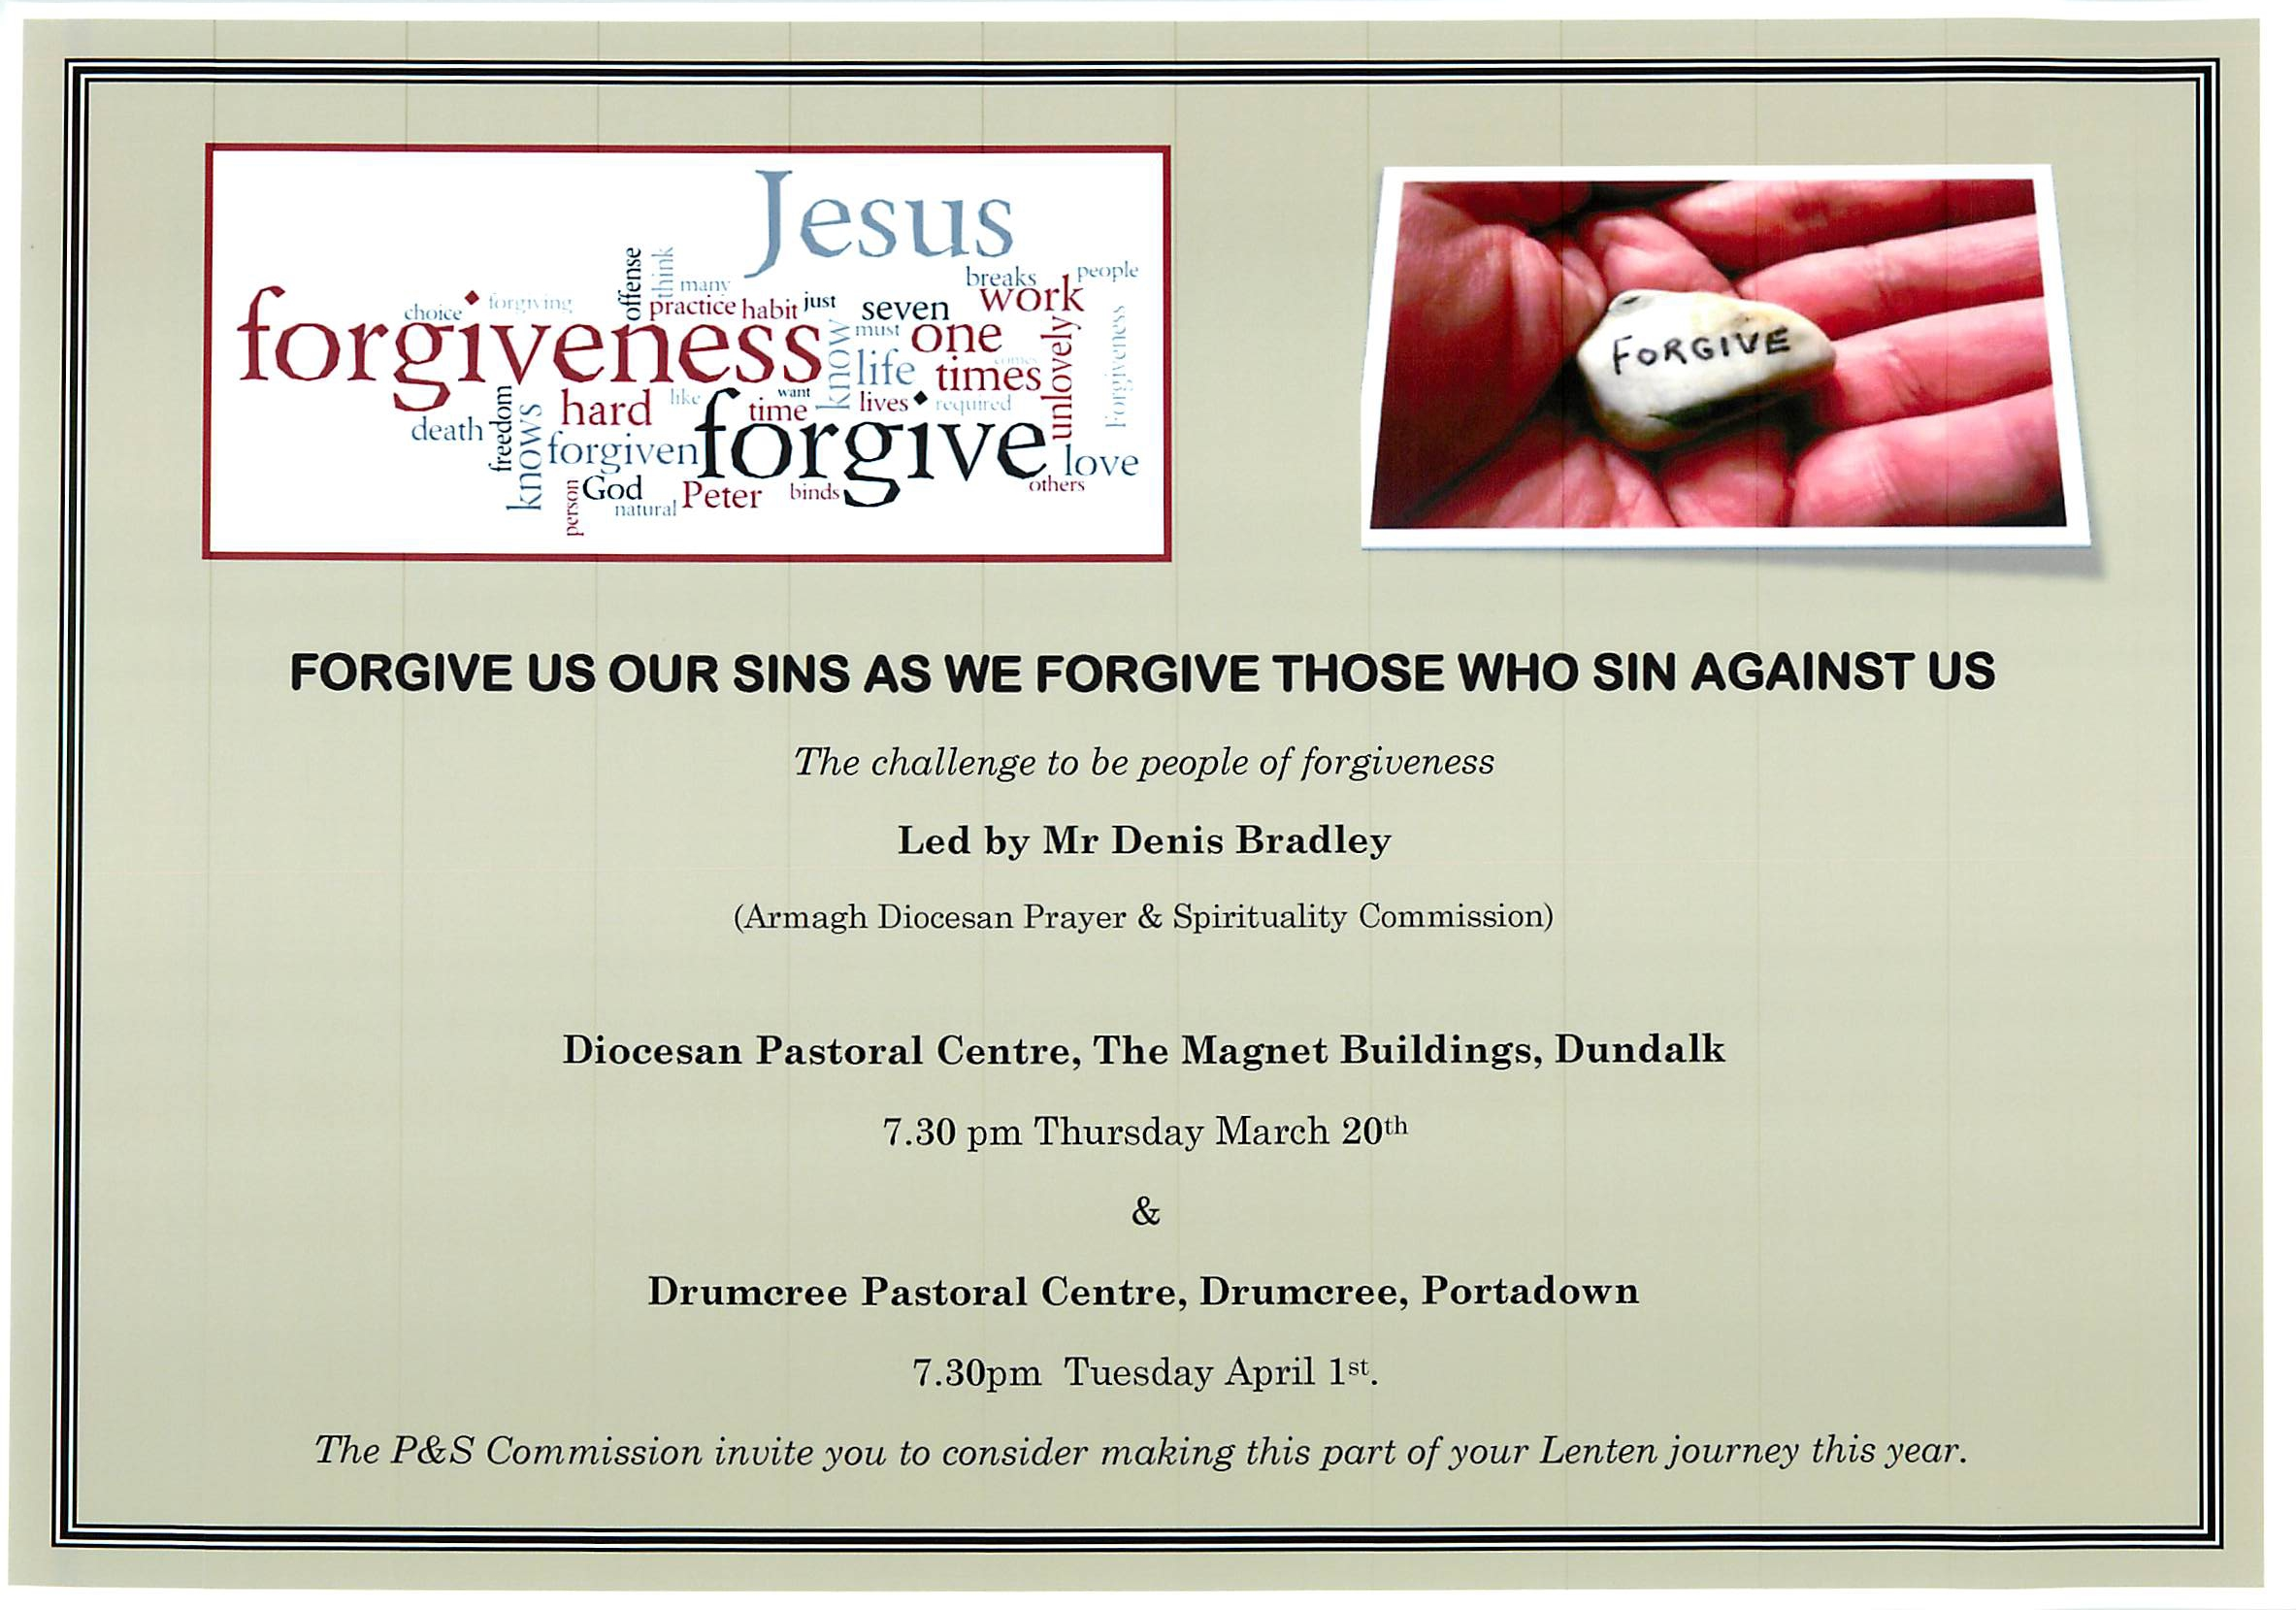 Forgiveness event Armagh image